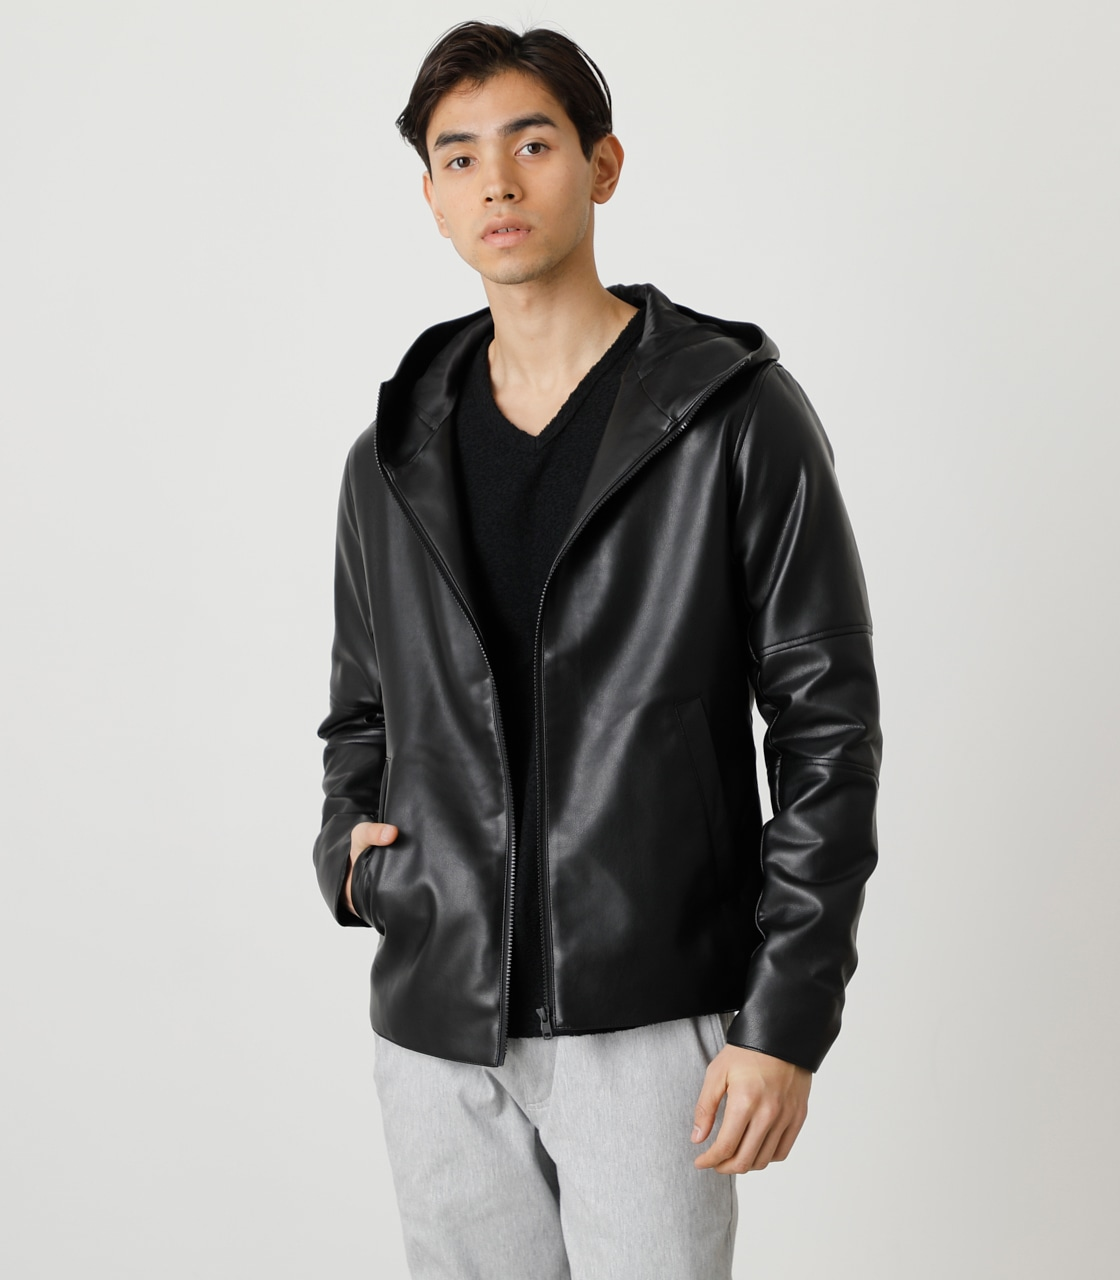 ECO LEATHER HOODED/エコレザーフーデッド 詳細画像 BLK 1